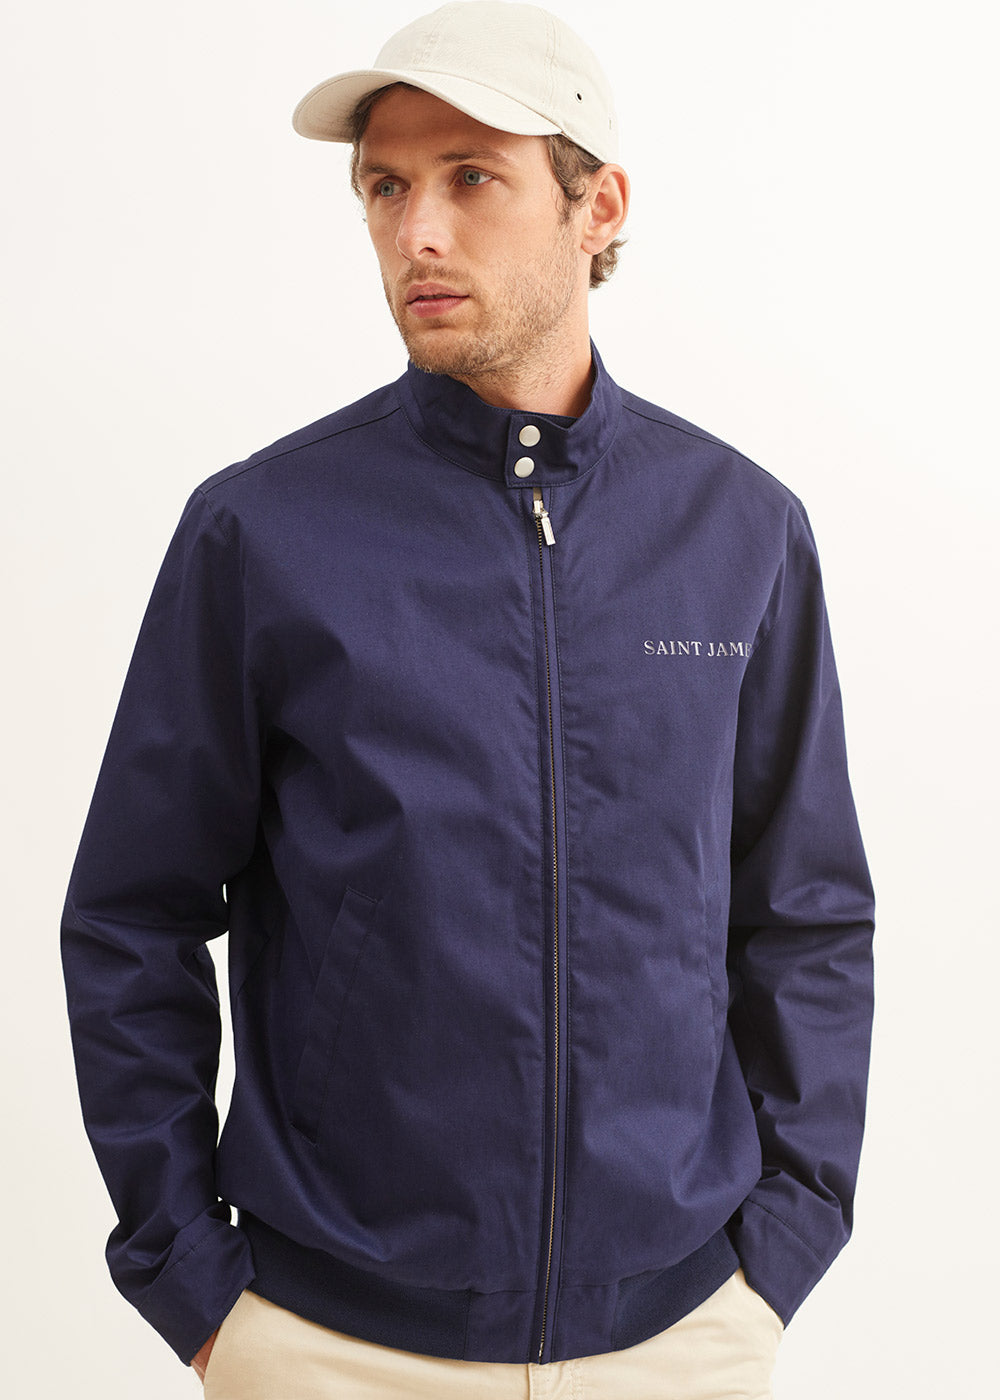 Saint James Jacket In Regular Classic Fit. St Daniel   Chosen In A Marine Colour